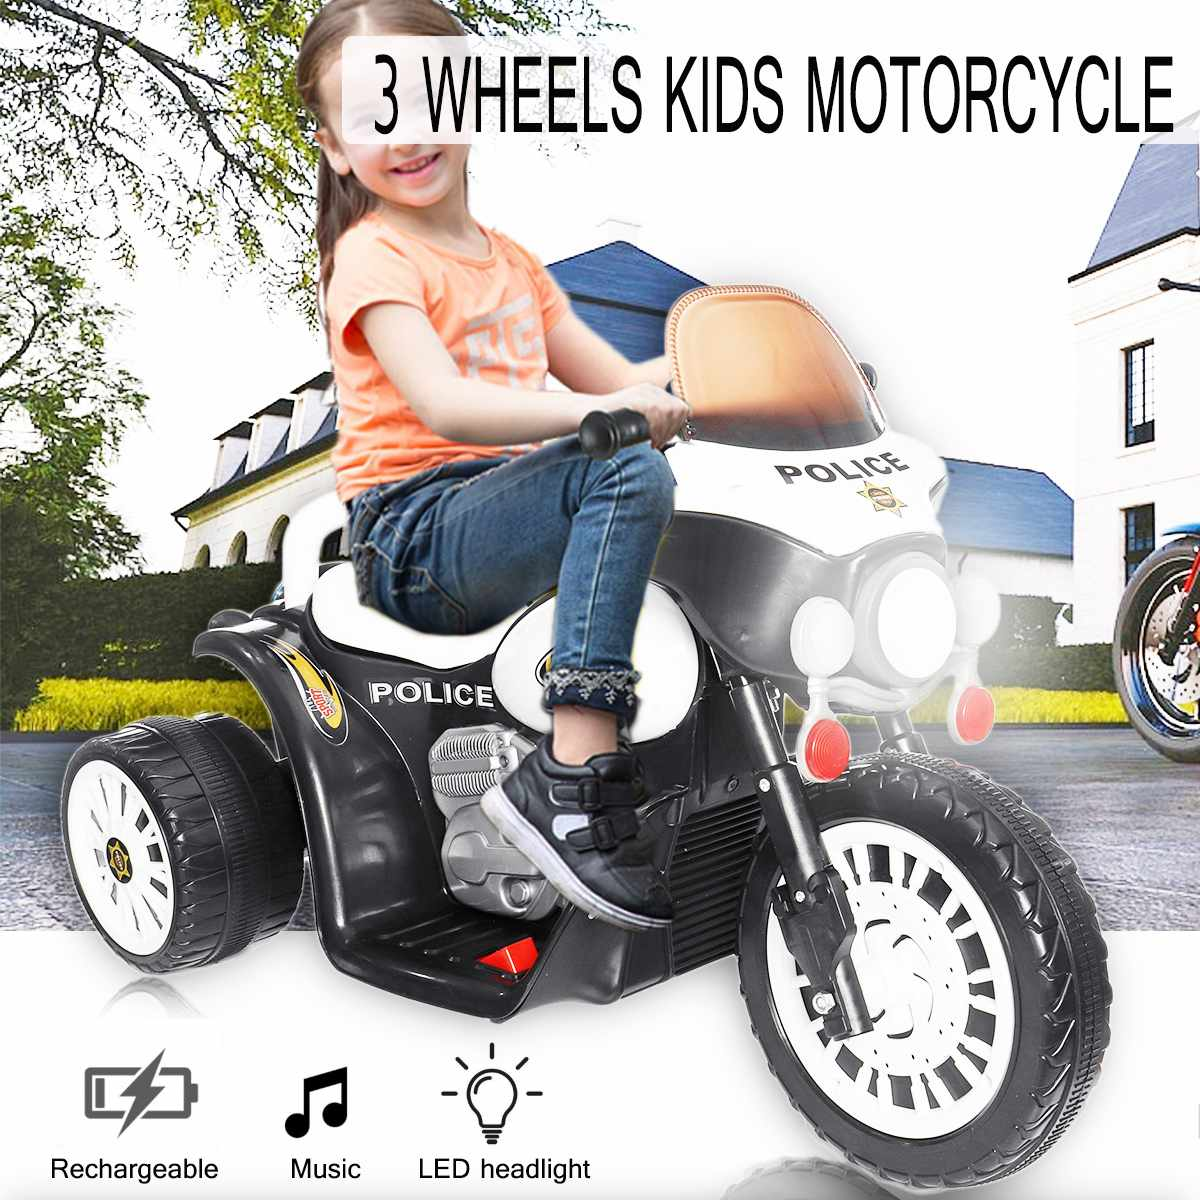 Kids Electric Motorcycle + Music Rechargeable Electric